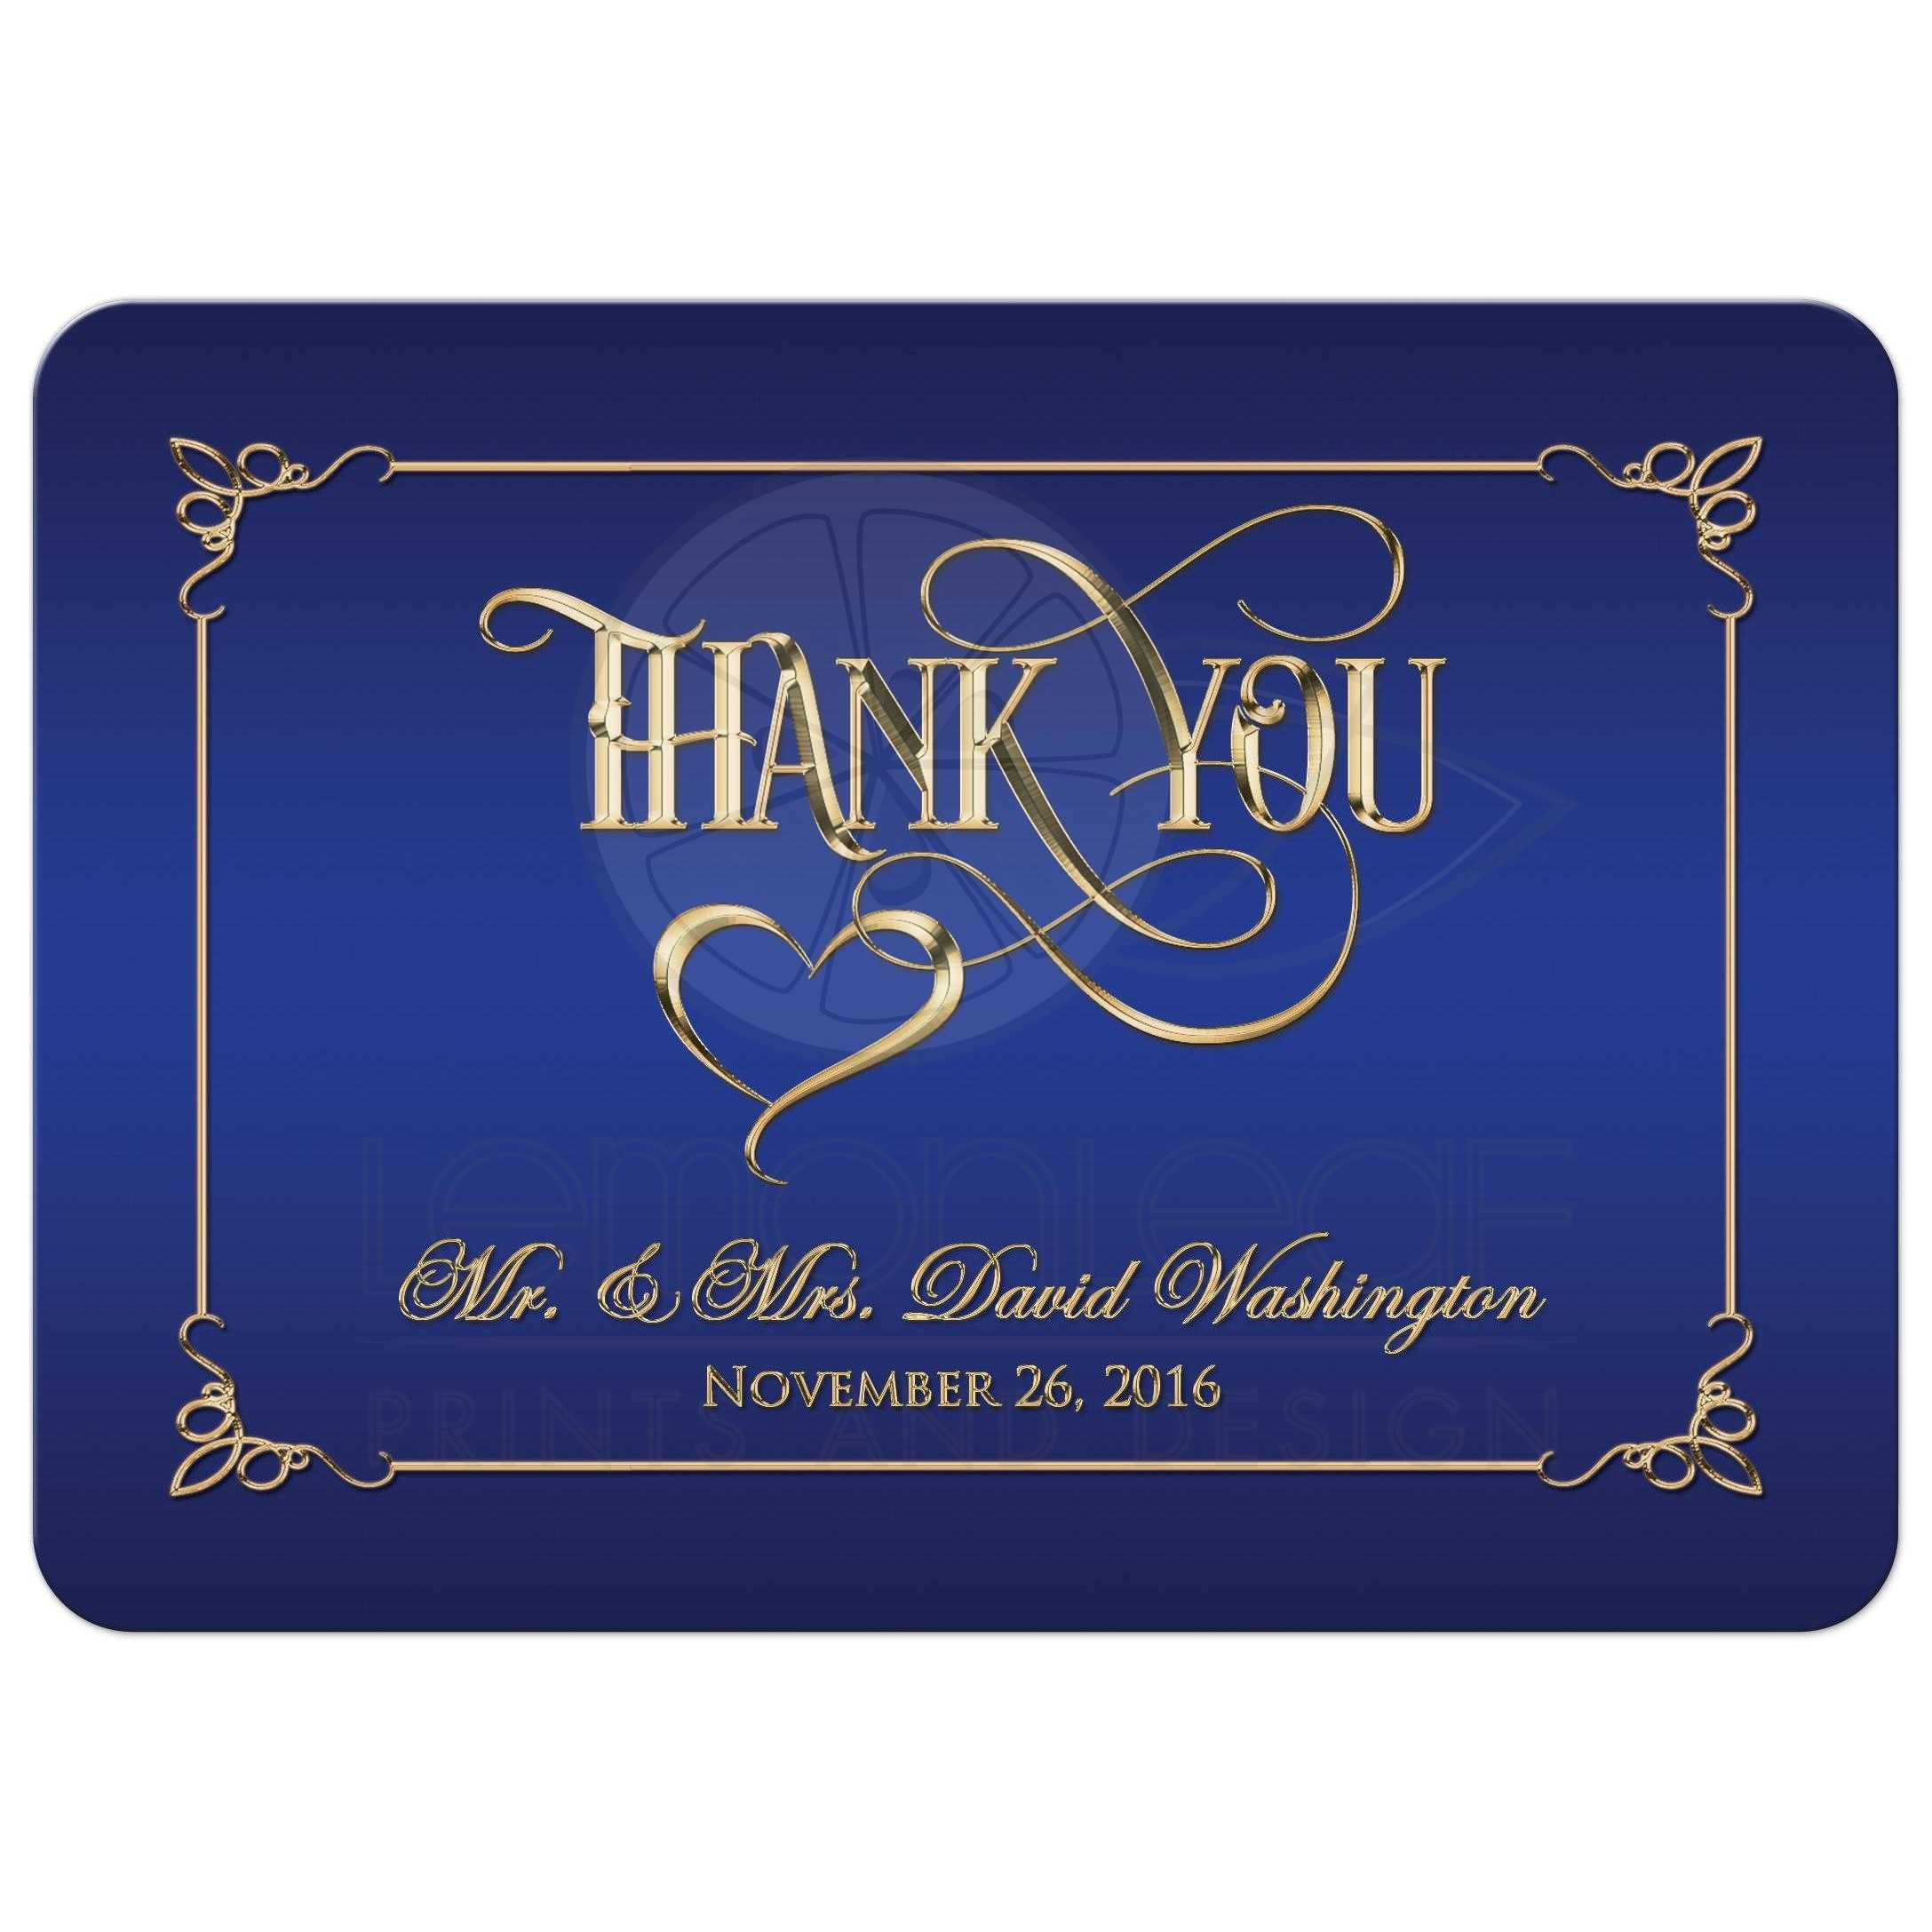 5x7 Photo Thank You Card Royal Blue Gold Ornate Scrolls